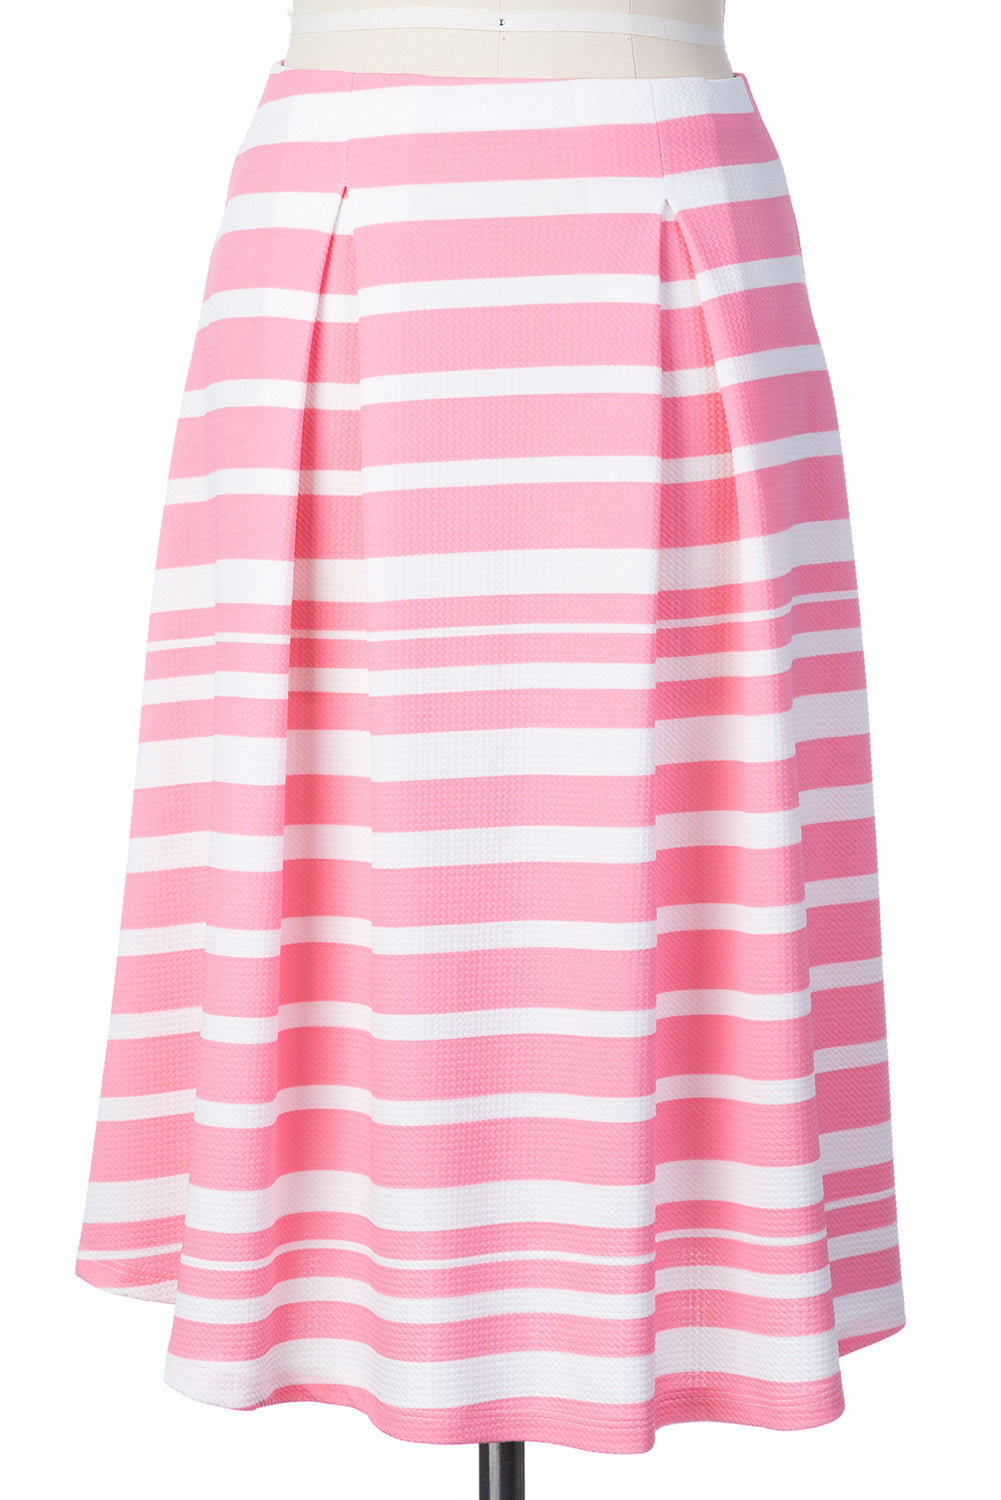 Type 1 Strawberry Creamsicle Skirt